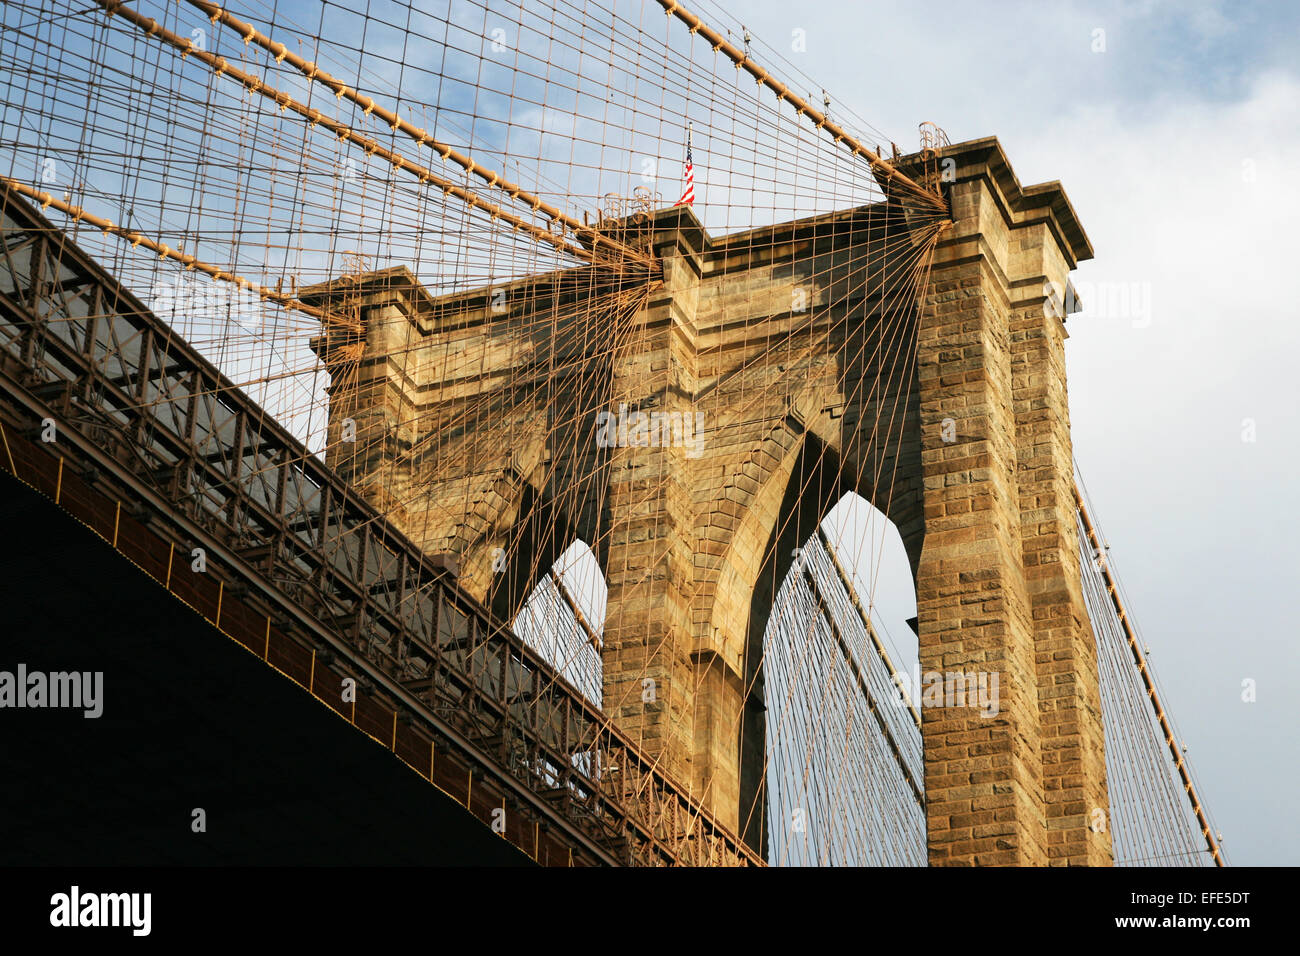 Brooklyn Bridge - Stock Image